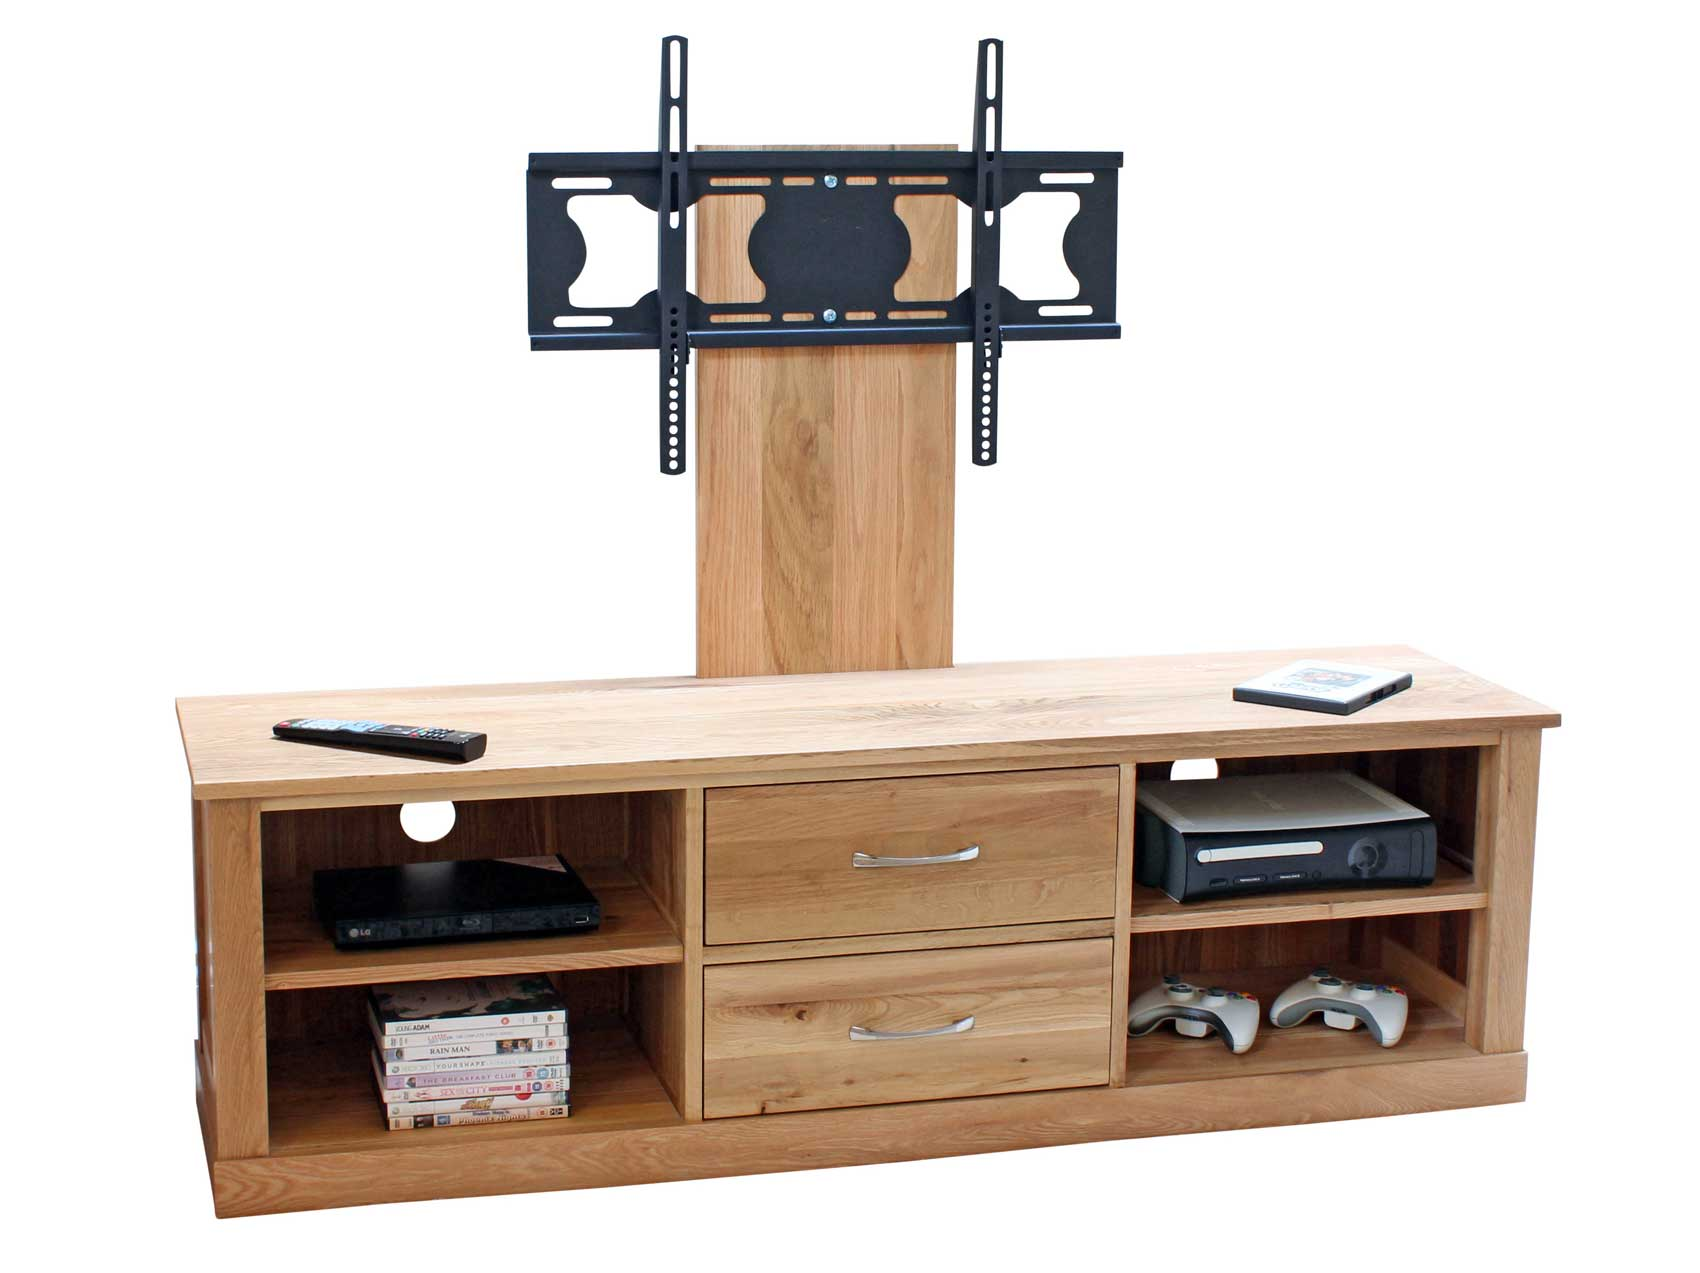 Design Tv Rack Cool Tv Rack With Tv Rack With Design Tv Rack Cool Flat Screen Tv Stands With Mount Homesfeed